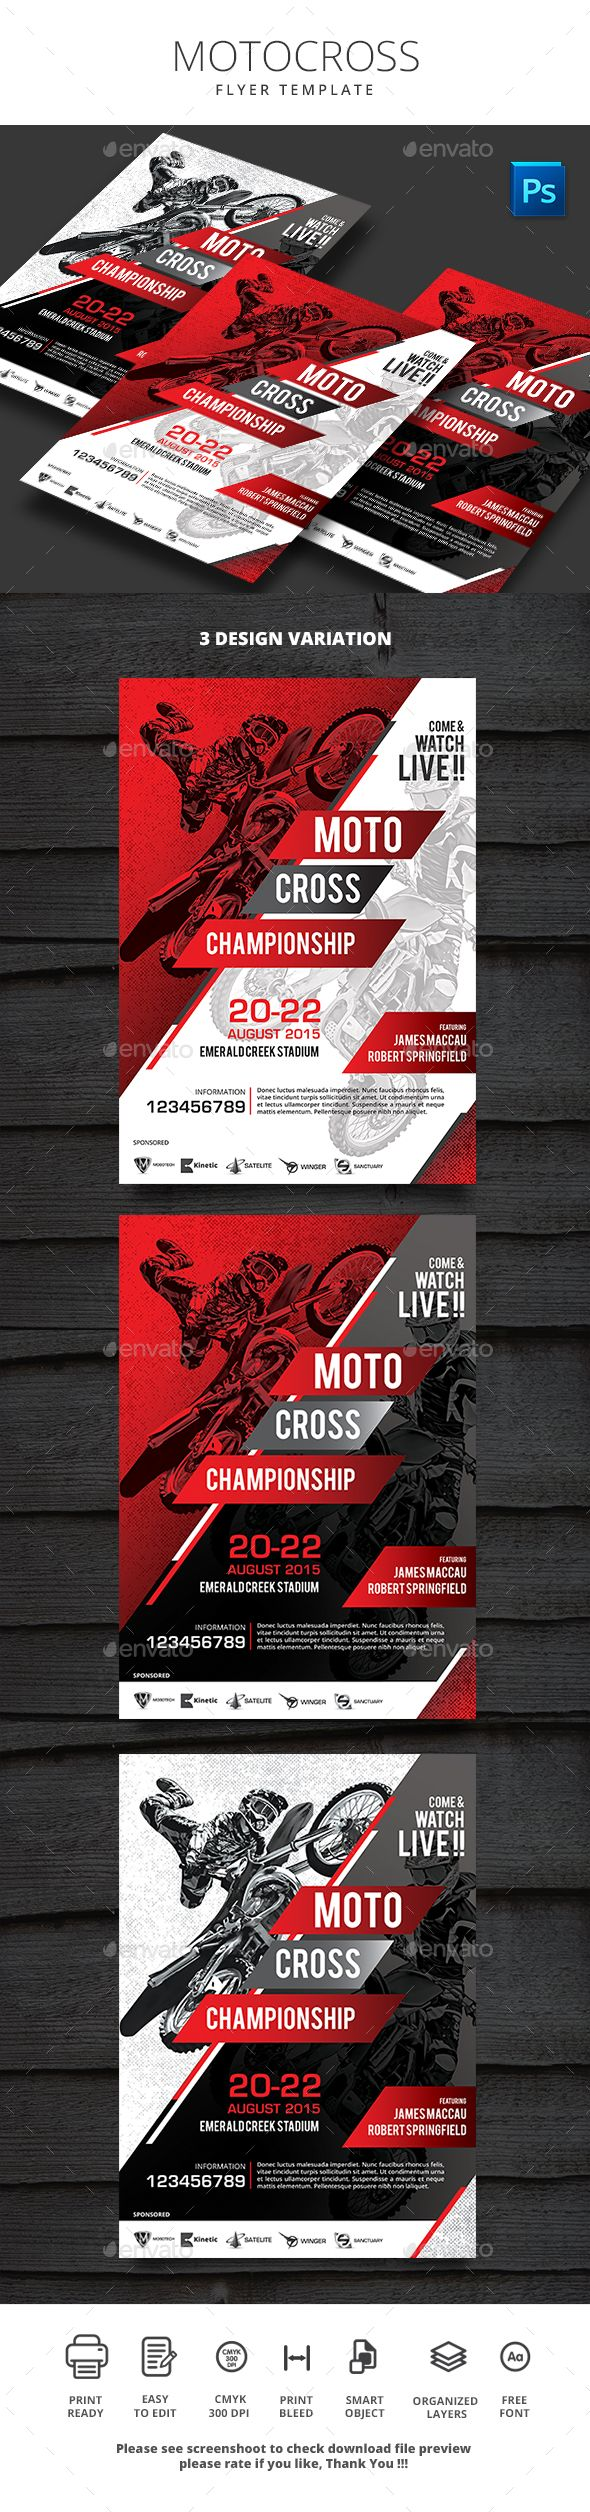 Motocross Flyer Template PSD. Download here: http://graphicriver.net/item/motocross-flyer/16921238?ref=ksioks